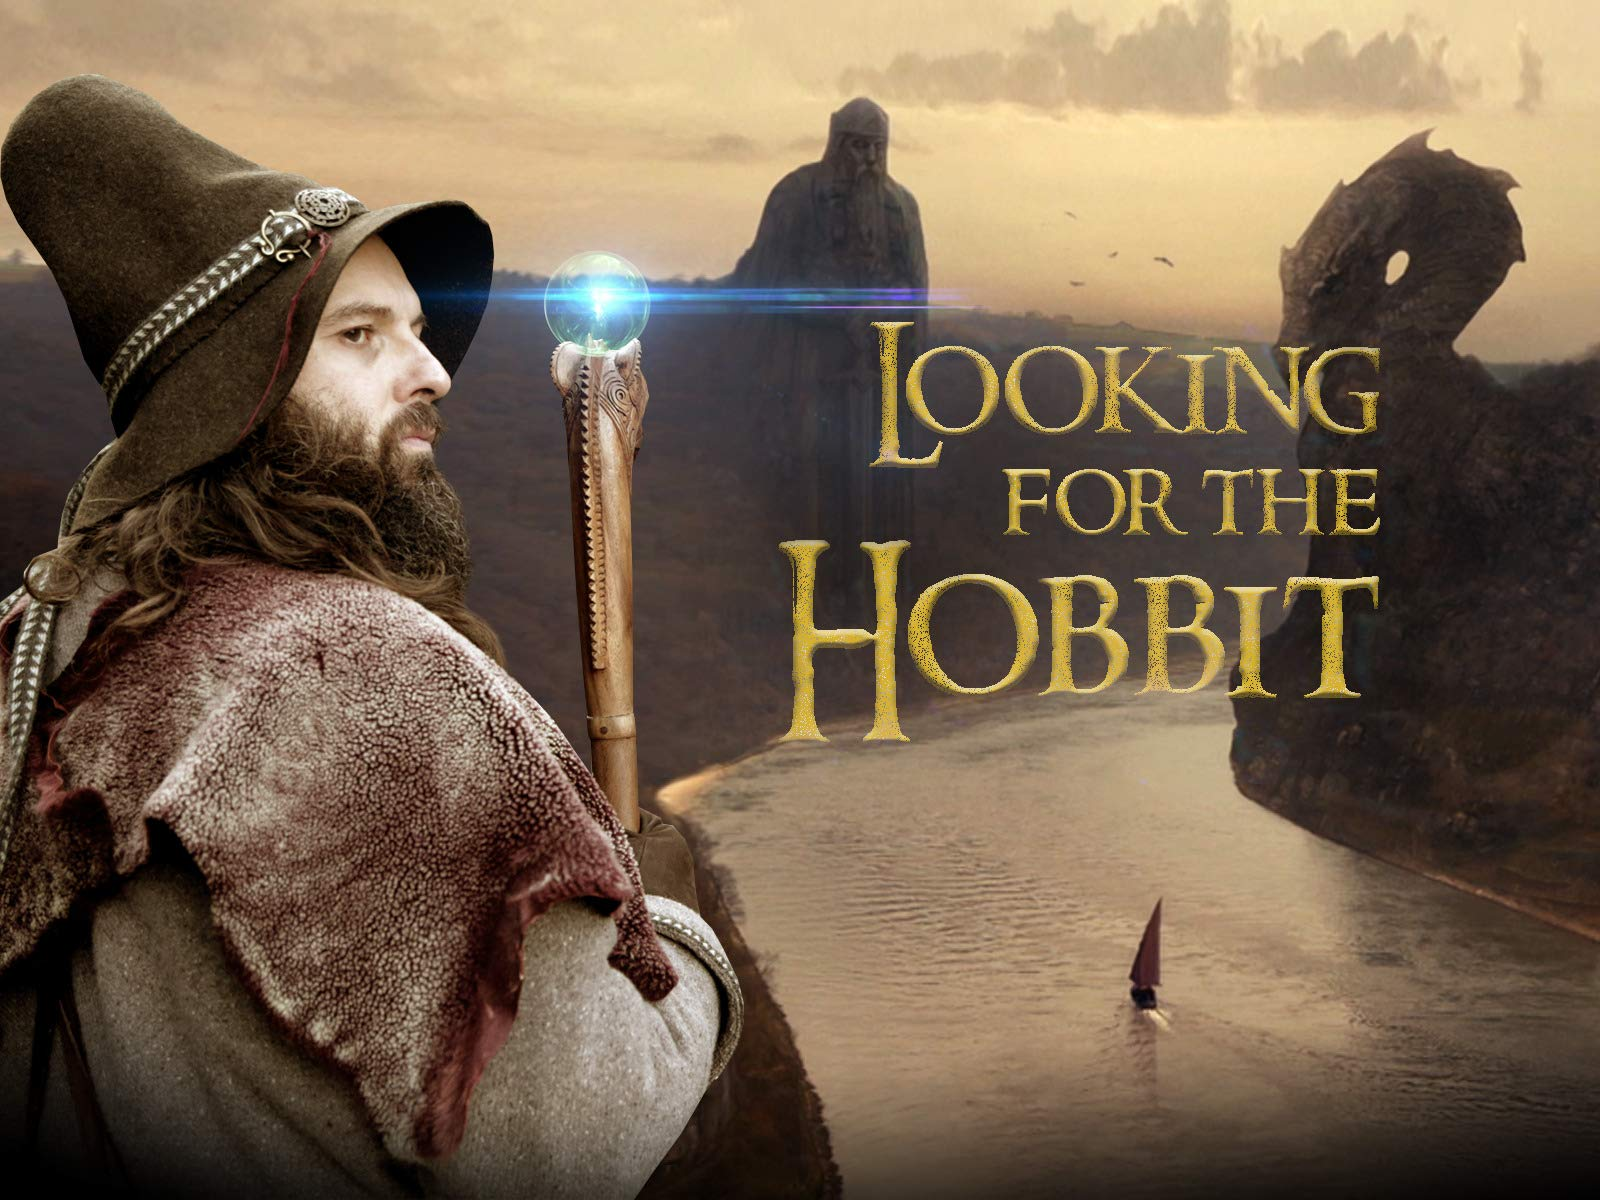 the hobbit audiobook torrent